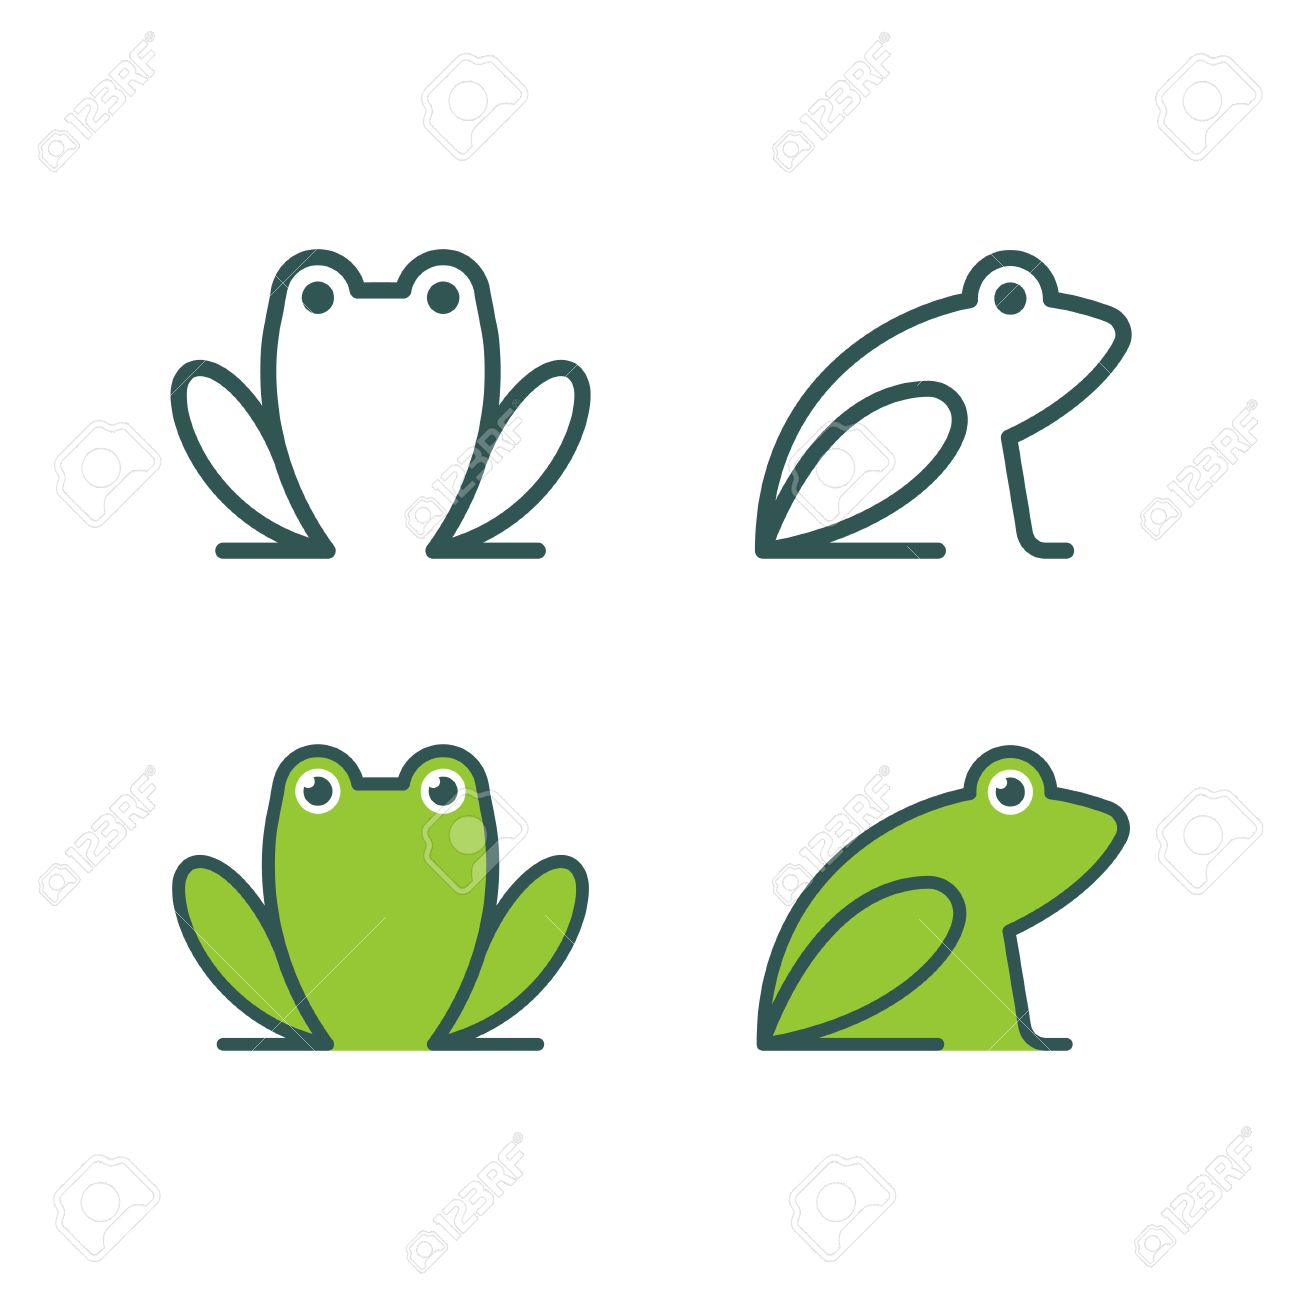 minimalist stylized cartoon frog logo line icon and colored rh 123rf com Cute Frog Silhouette Leaping Frog Clip Art